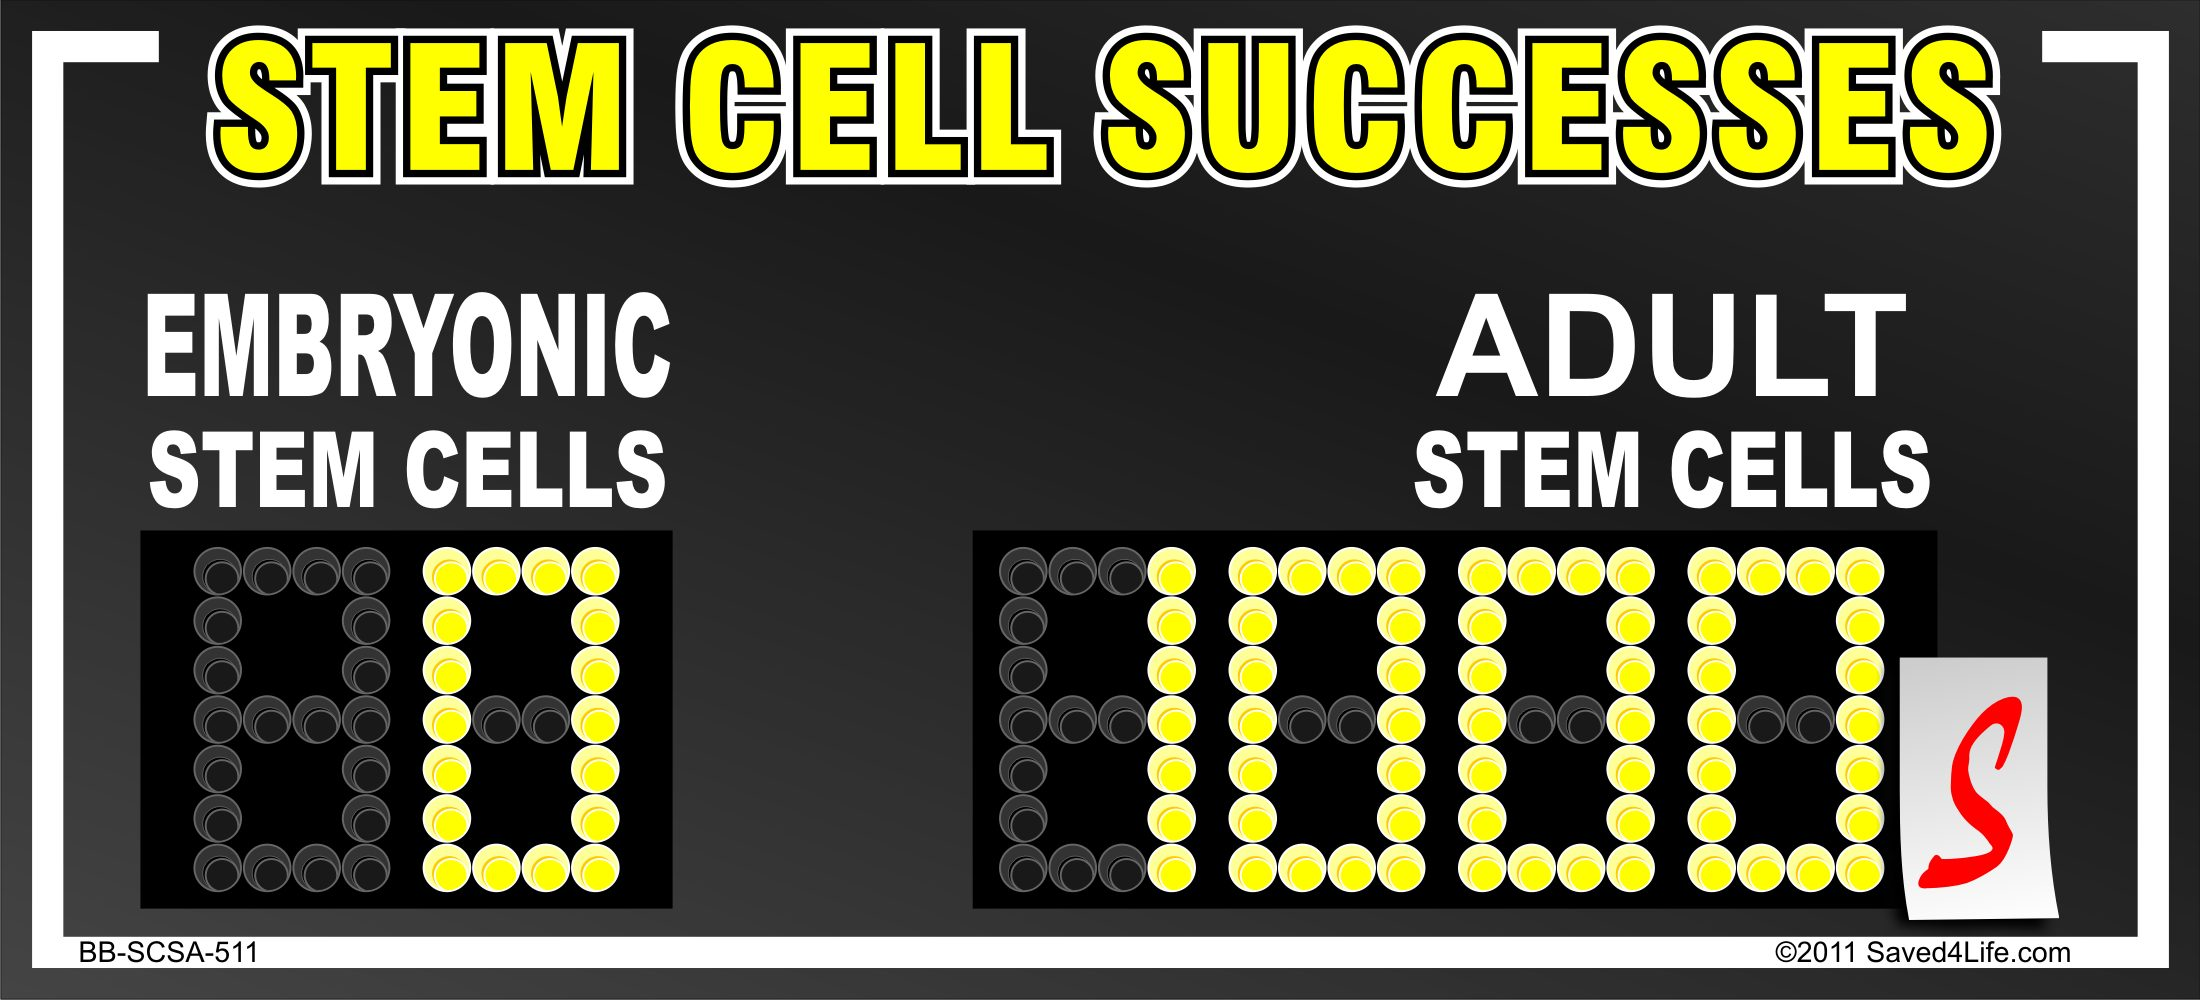 Stem Cell Successes 5x11 Billboard